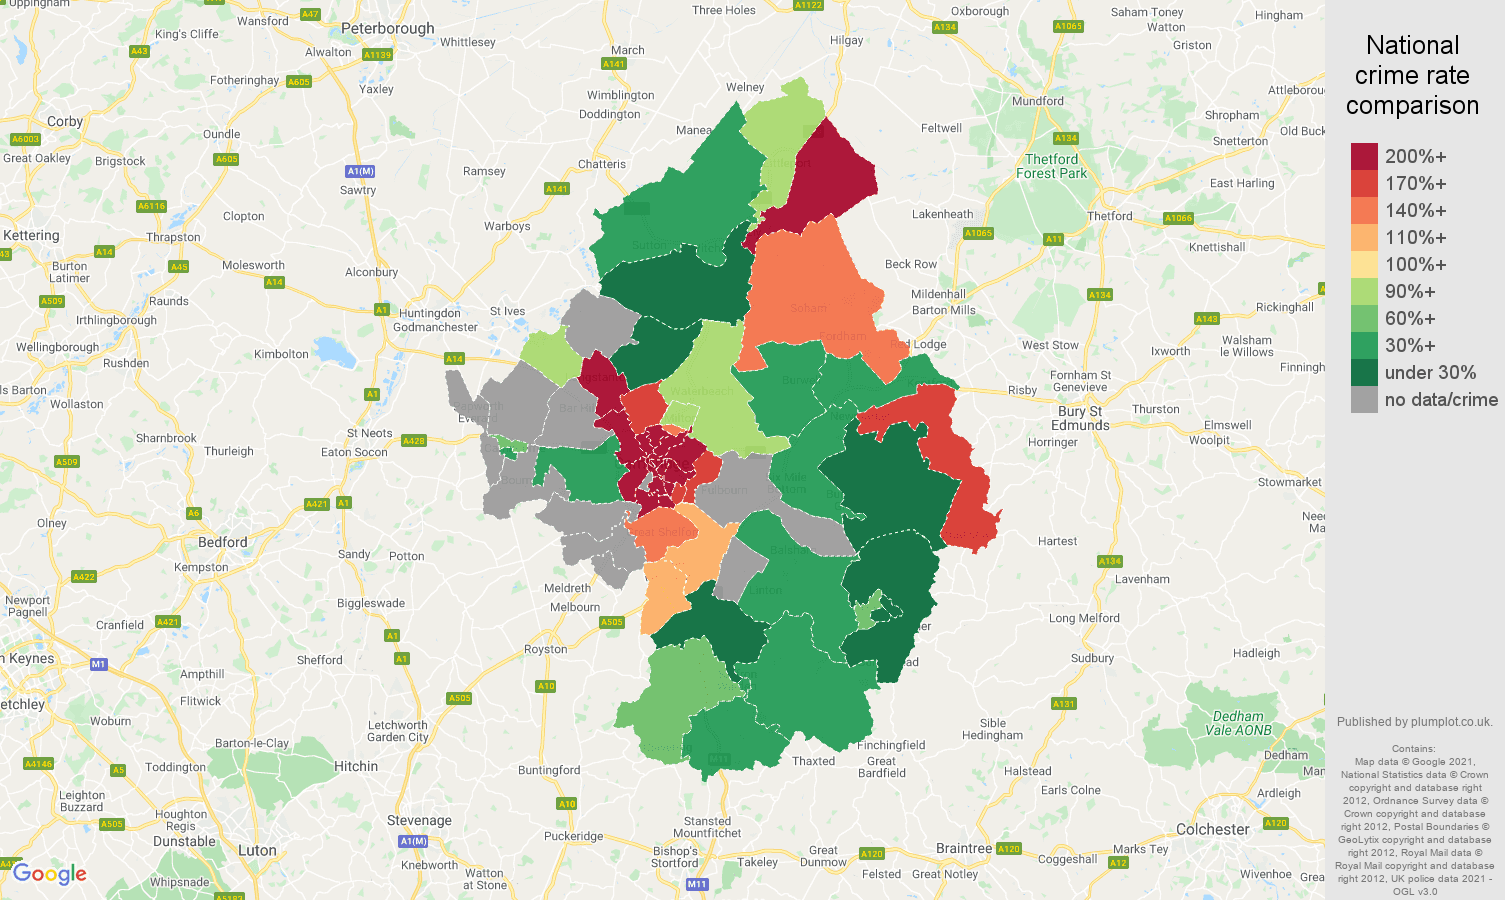 Cambridge bicycle theft crime rate comparison map